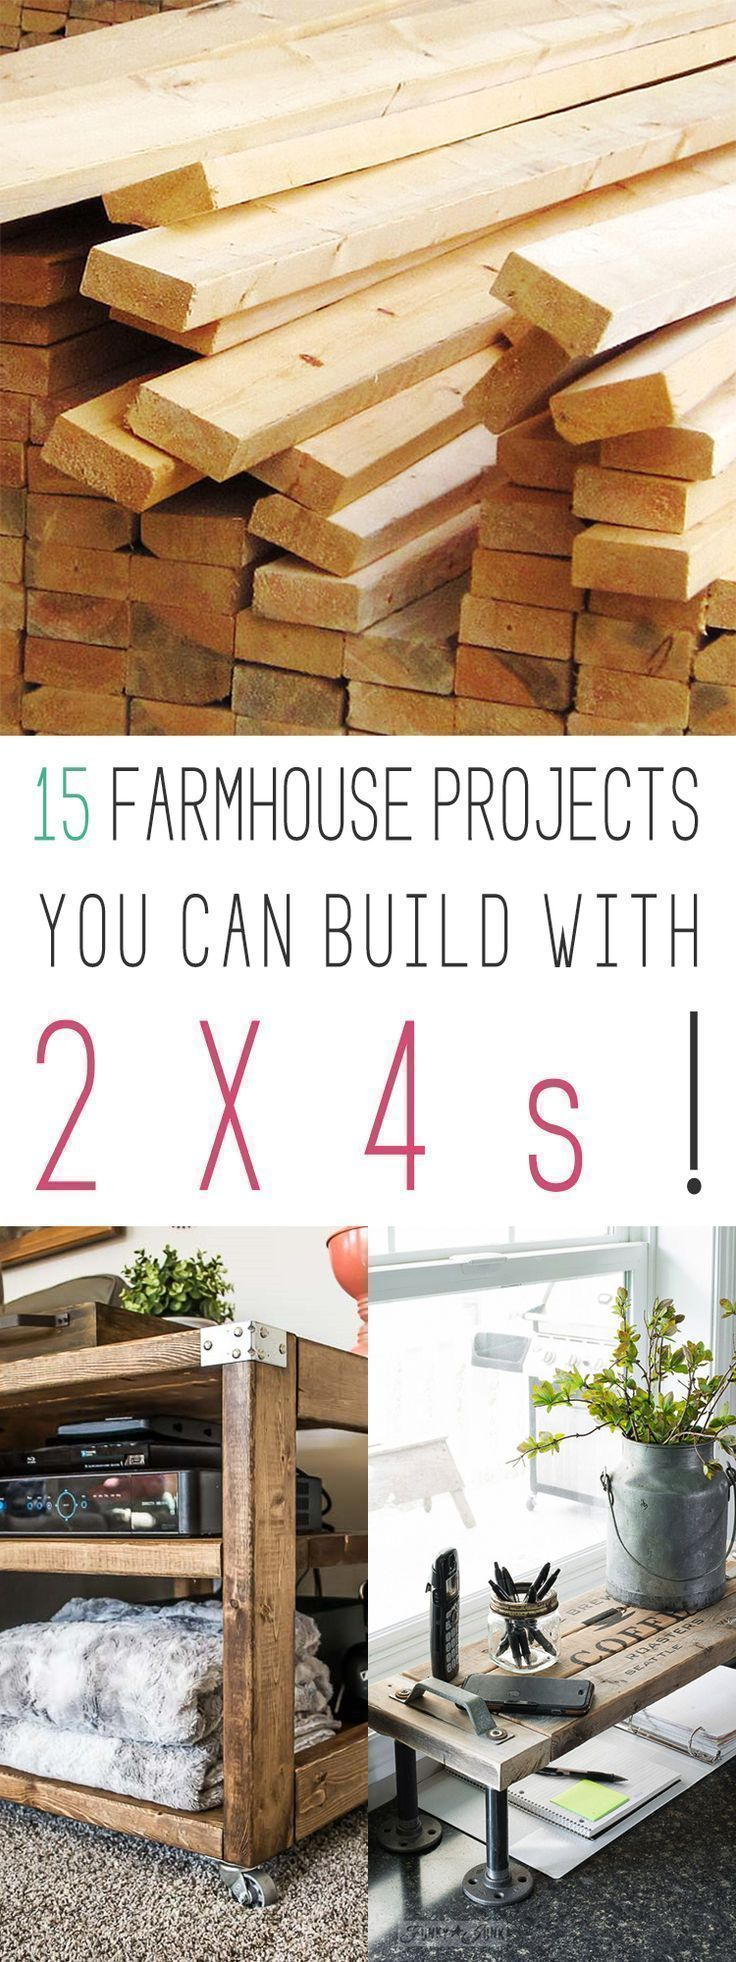 15 Farmhouse Projects You Can Build With 2X4s - The Cottage Market